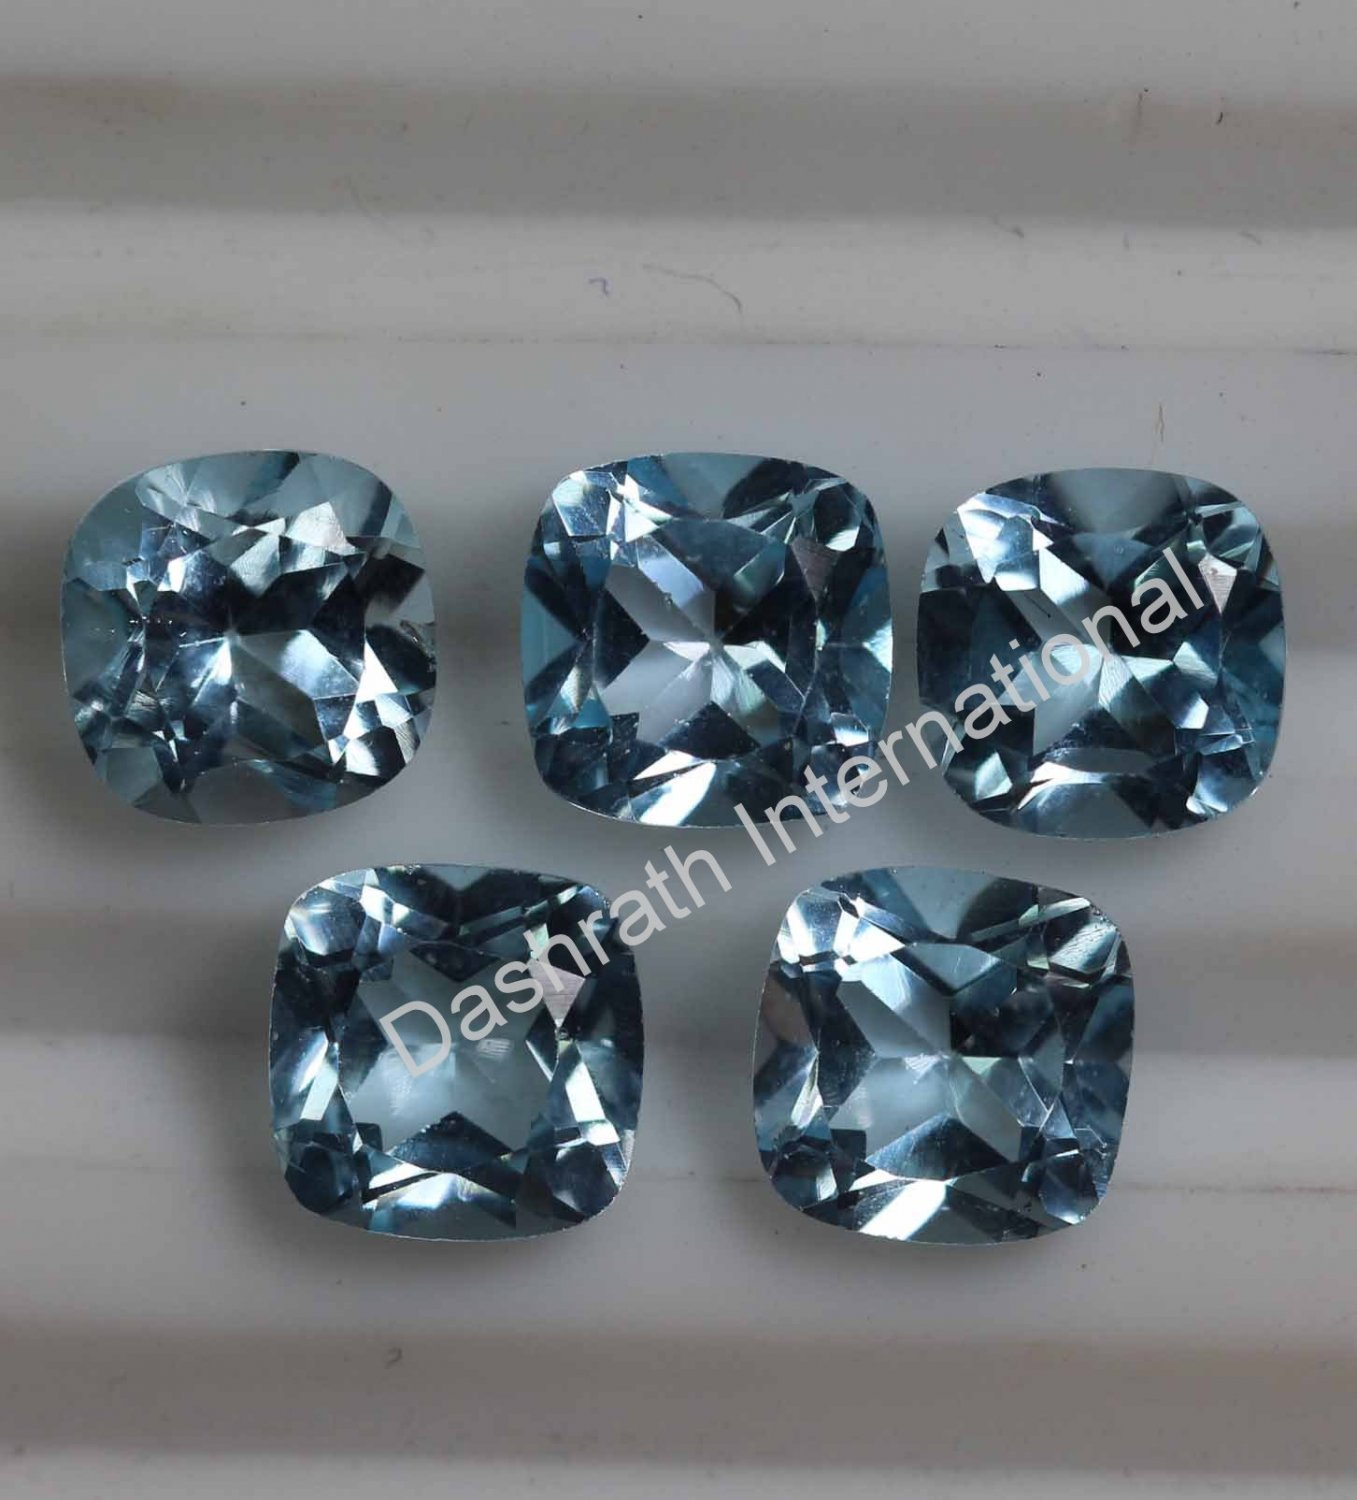 6mm Natural Sky Blue Topaz Faceted Cut Cushion 100 Pieces Lot Top Quality Loose Gemstone